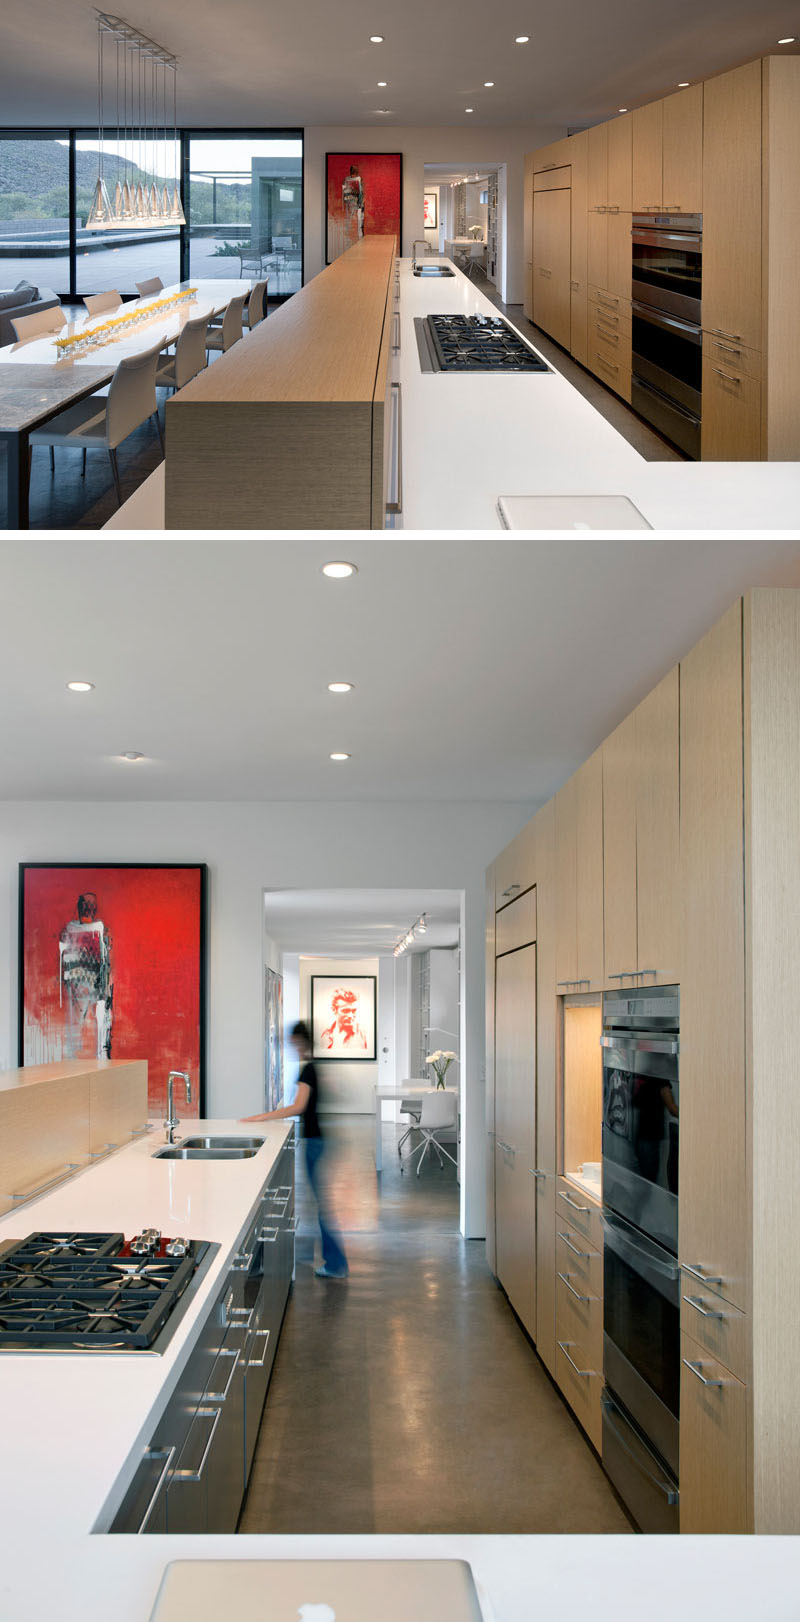 wood-and-white-kitchen-141116-420-07